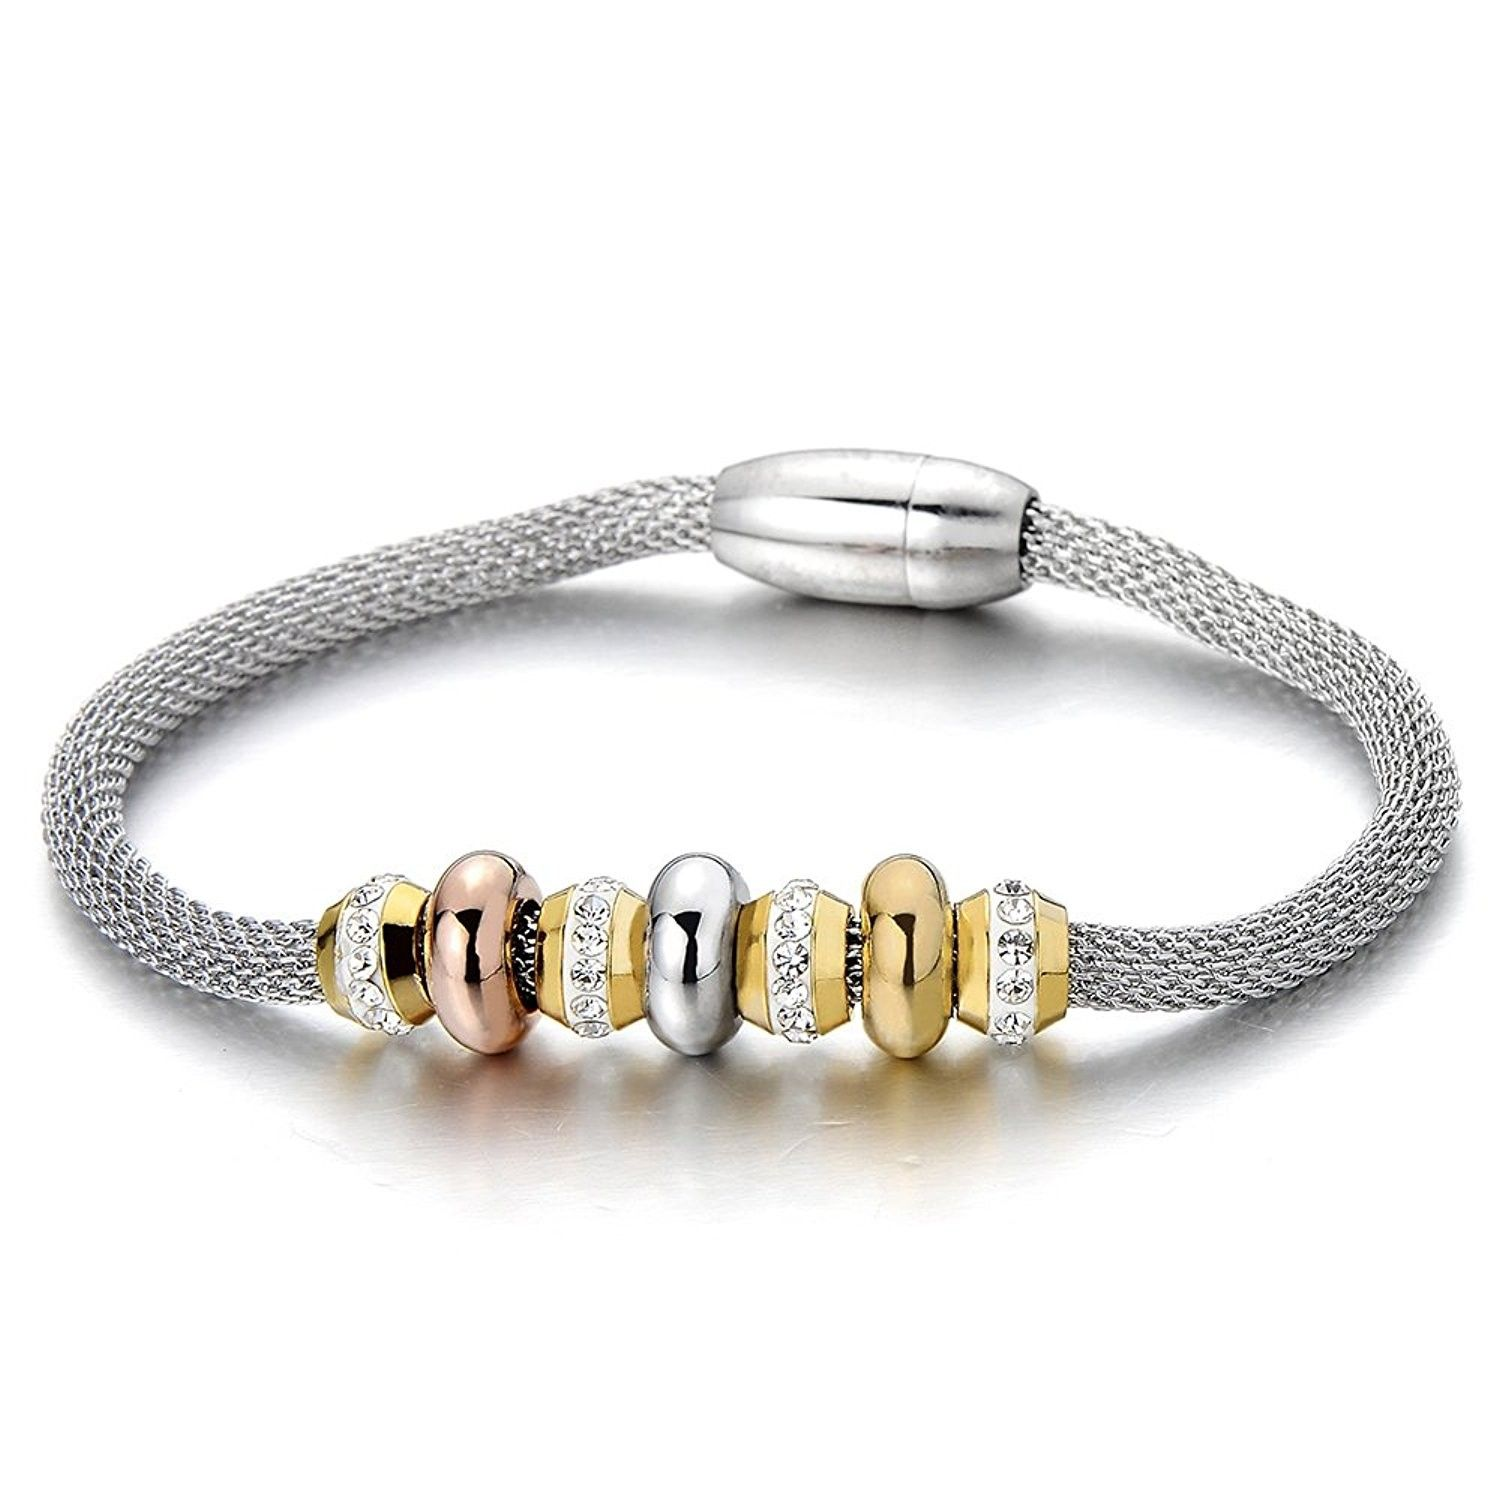 Stainless steel charm bracelet for women and girls with stainless